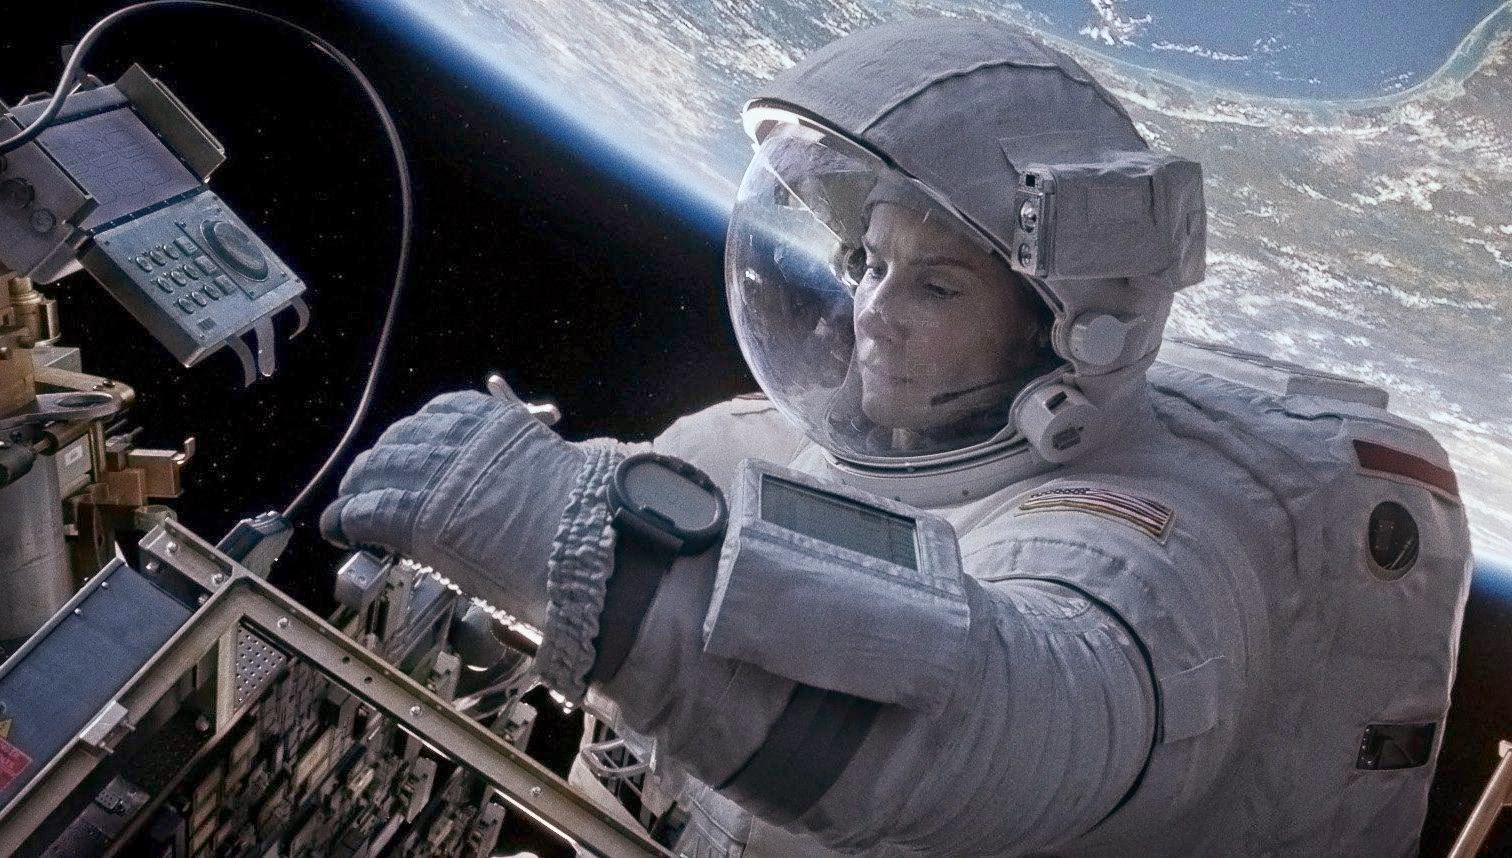 astronaut trapped in space movie - photo #40